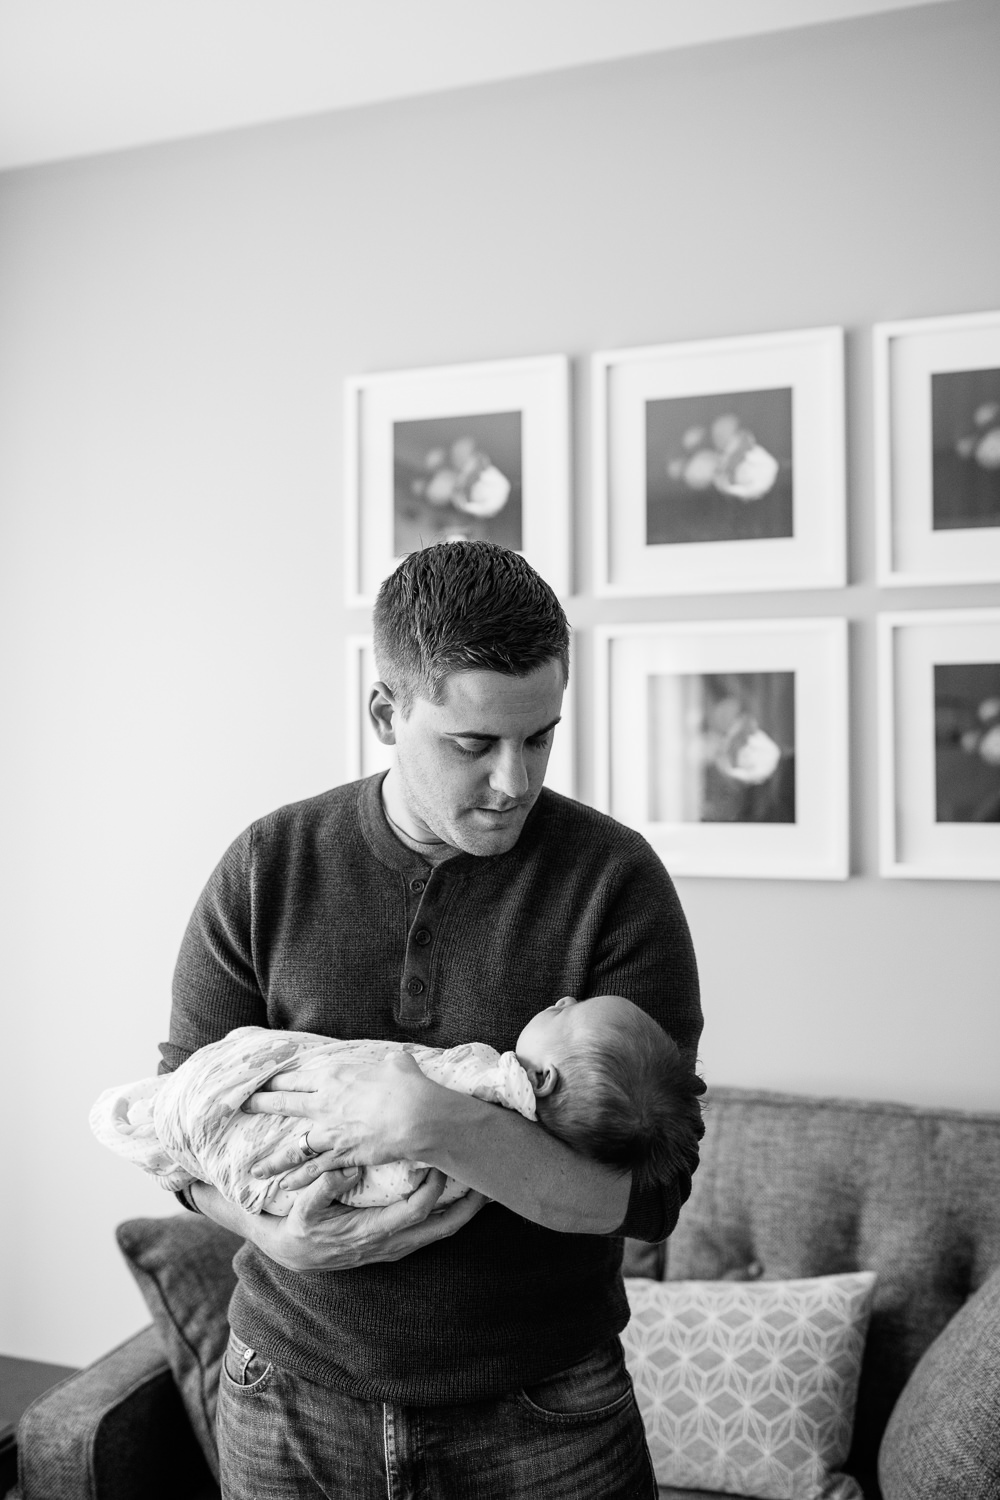 father standing in living room holding sleeping 2 week old baby boy in his arms, looking at son -  Markham Lifestyle Photography